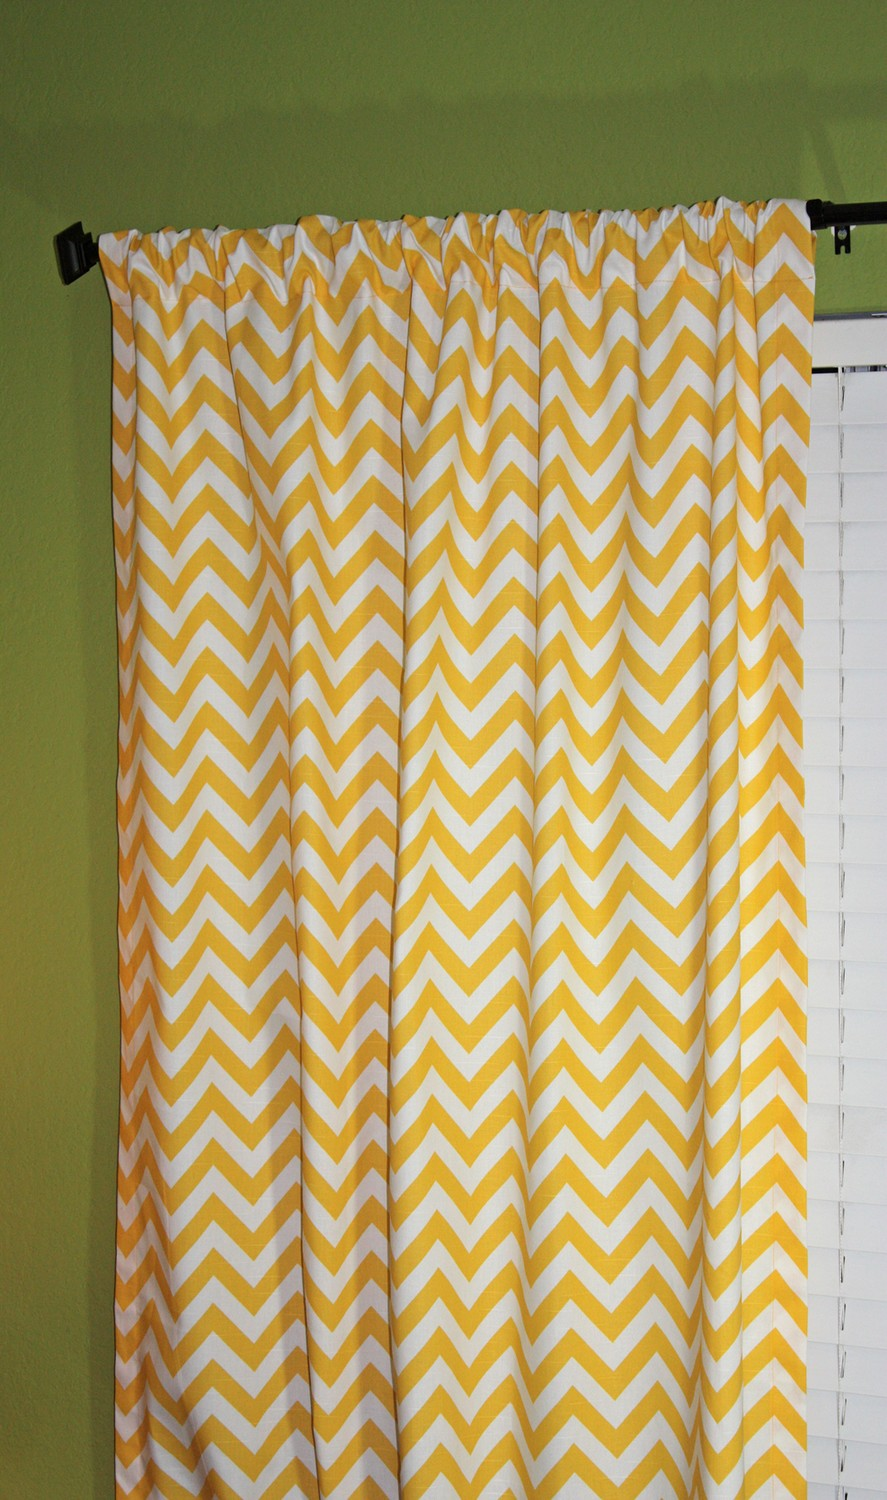 Penny Pinching Design: Turquoise Chevron Curtains